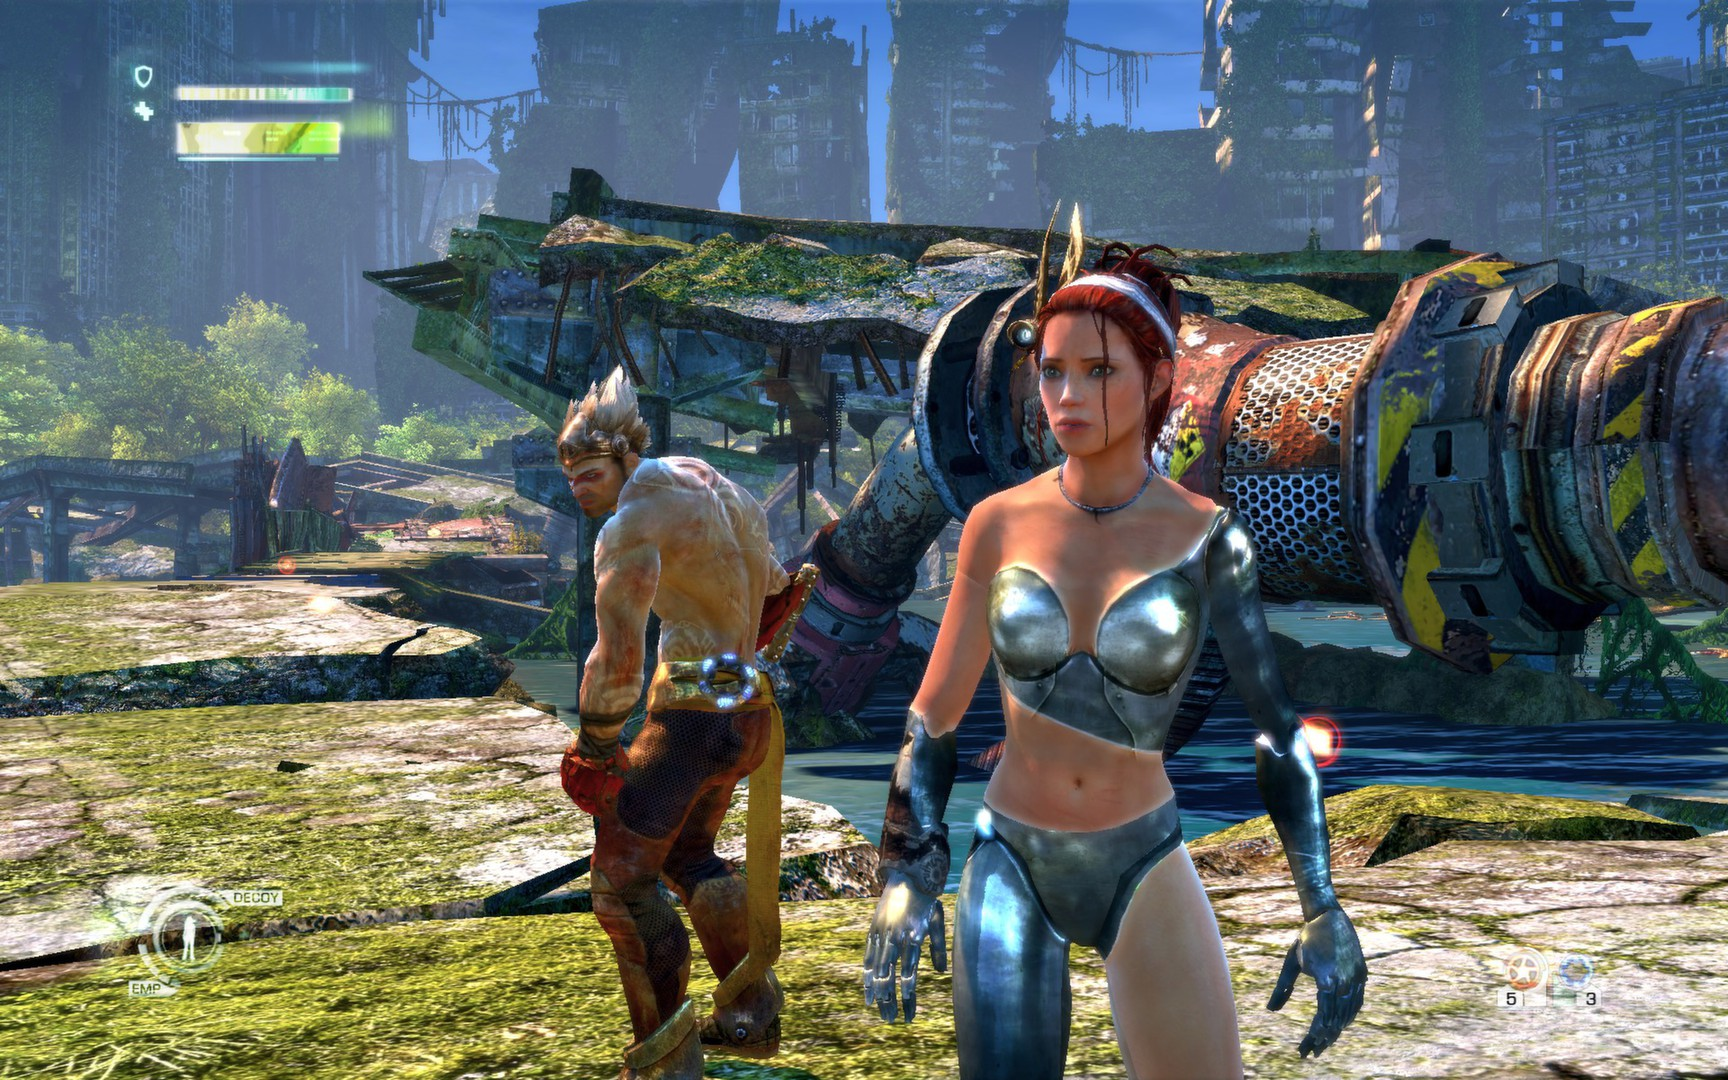 Enslaved odyssey to the west porn hentia pic